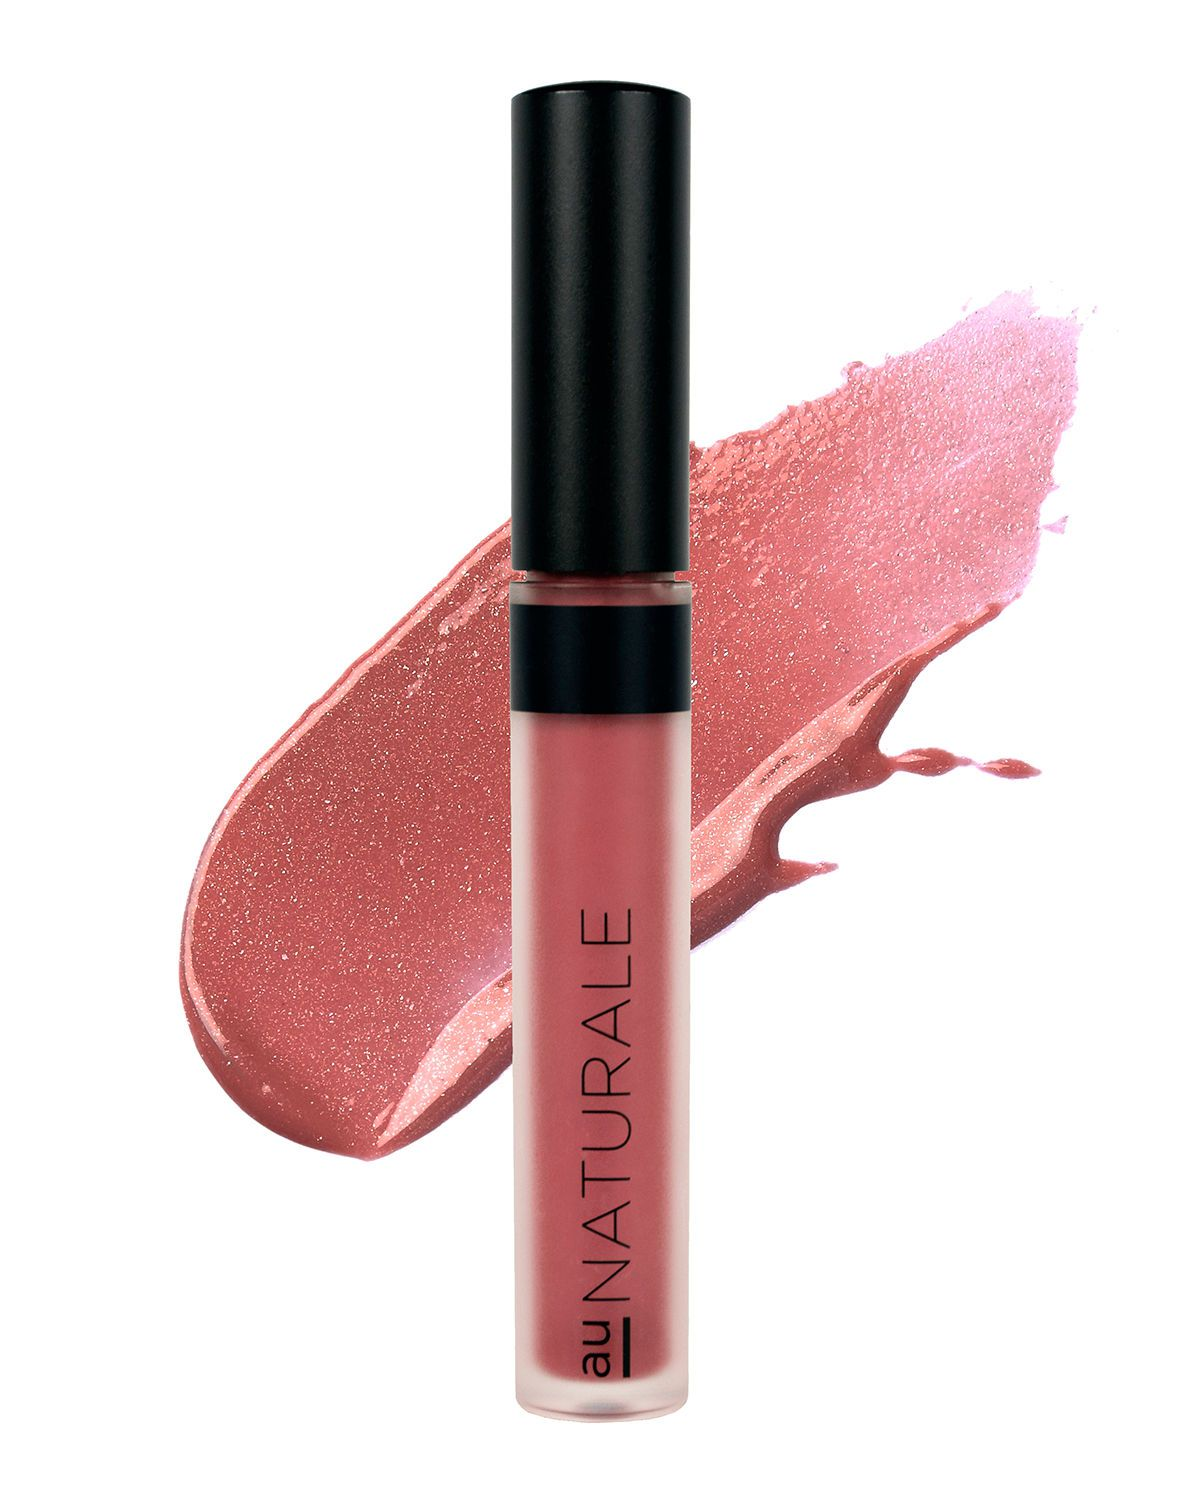 Au Naturale High Lustre Lip Gloss in Passionfruit